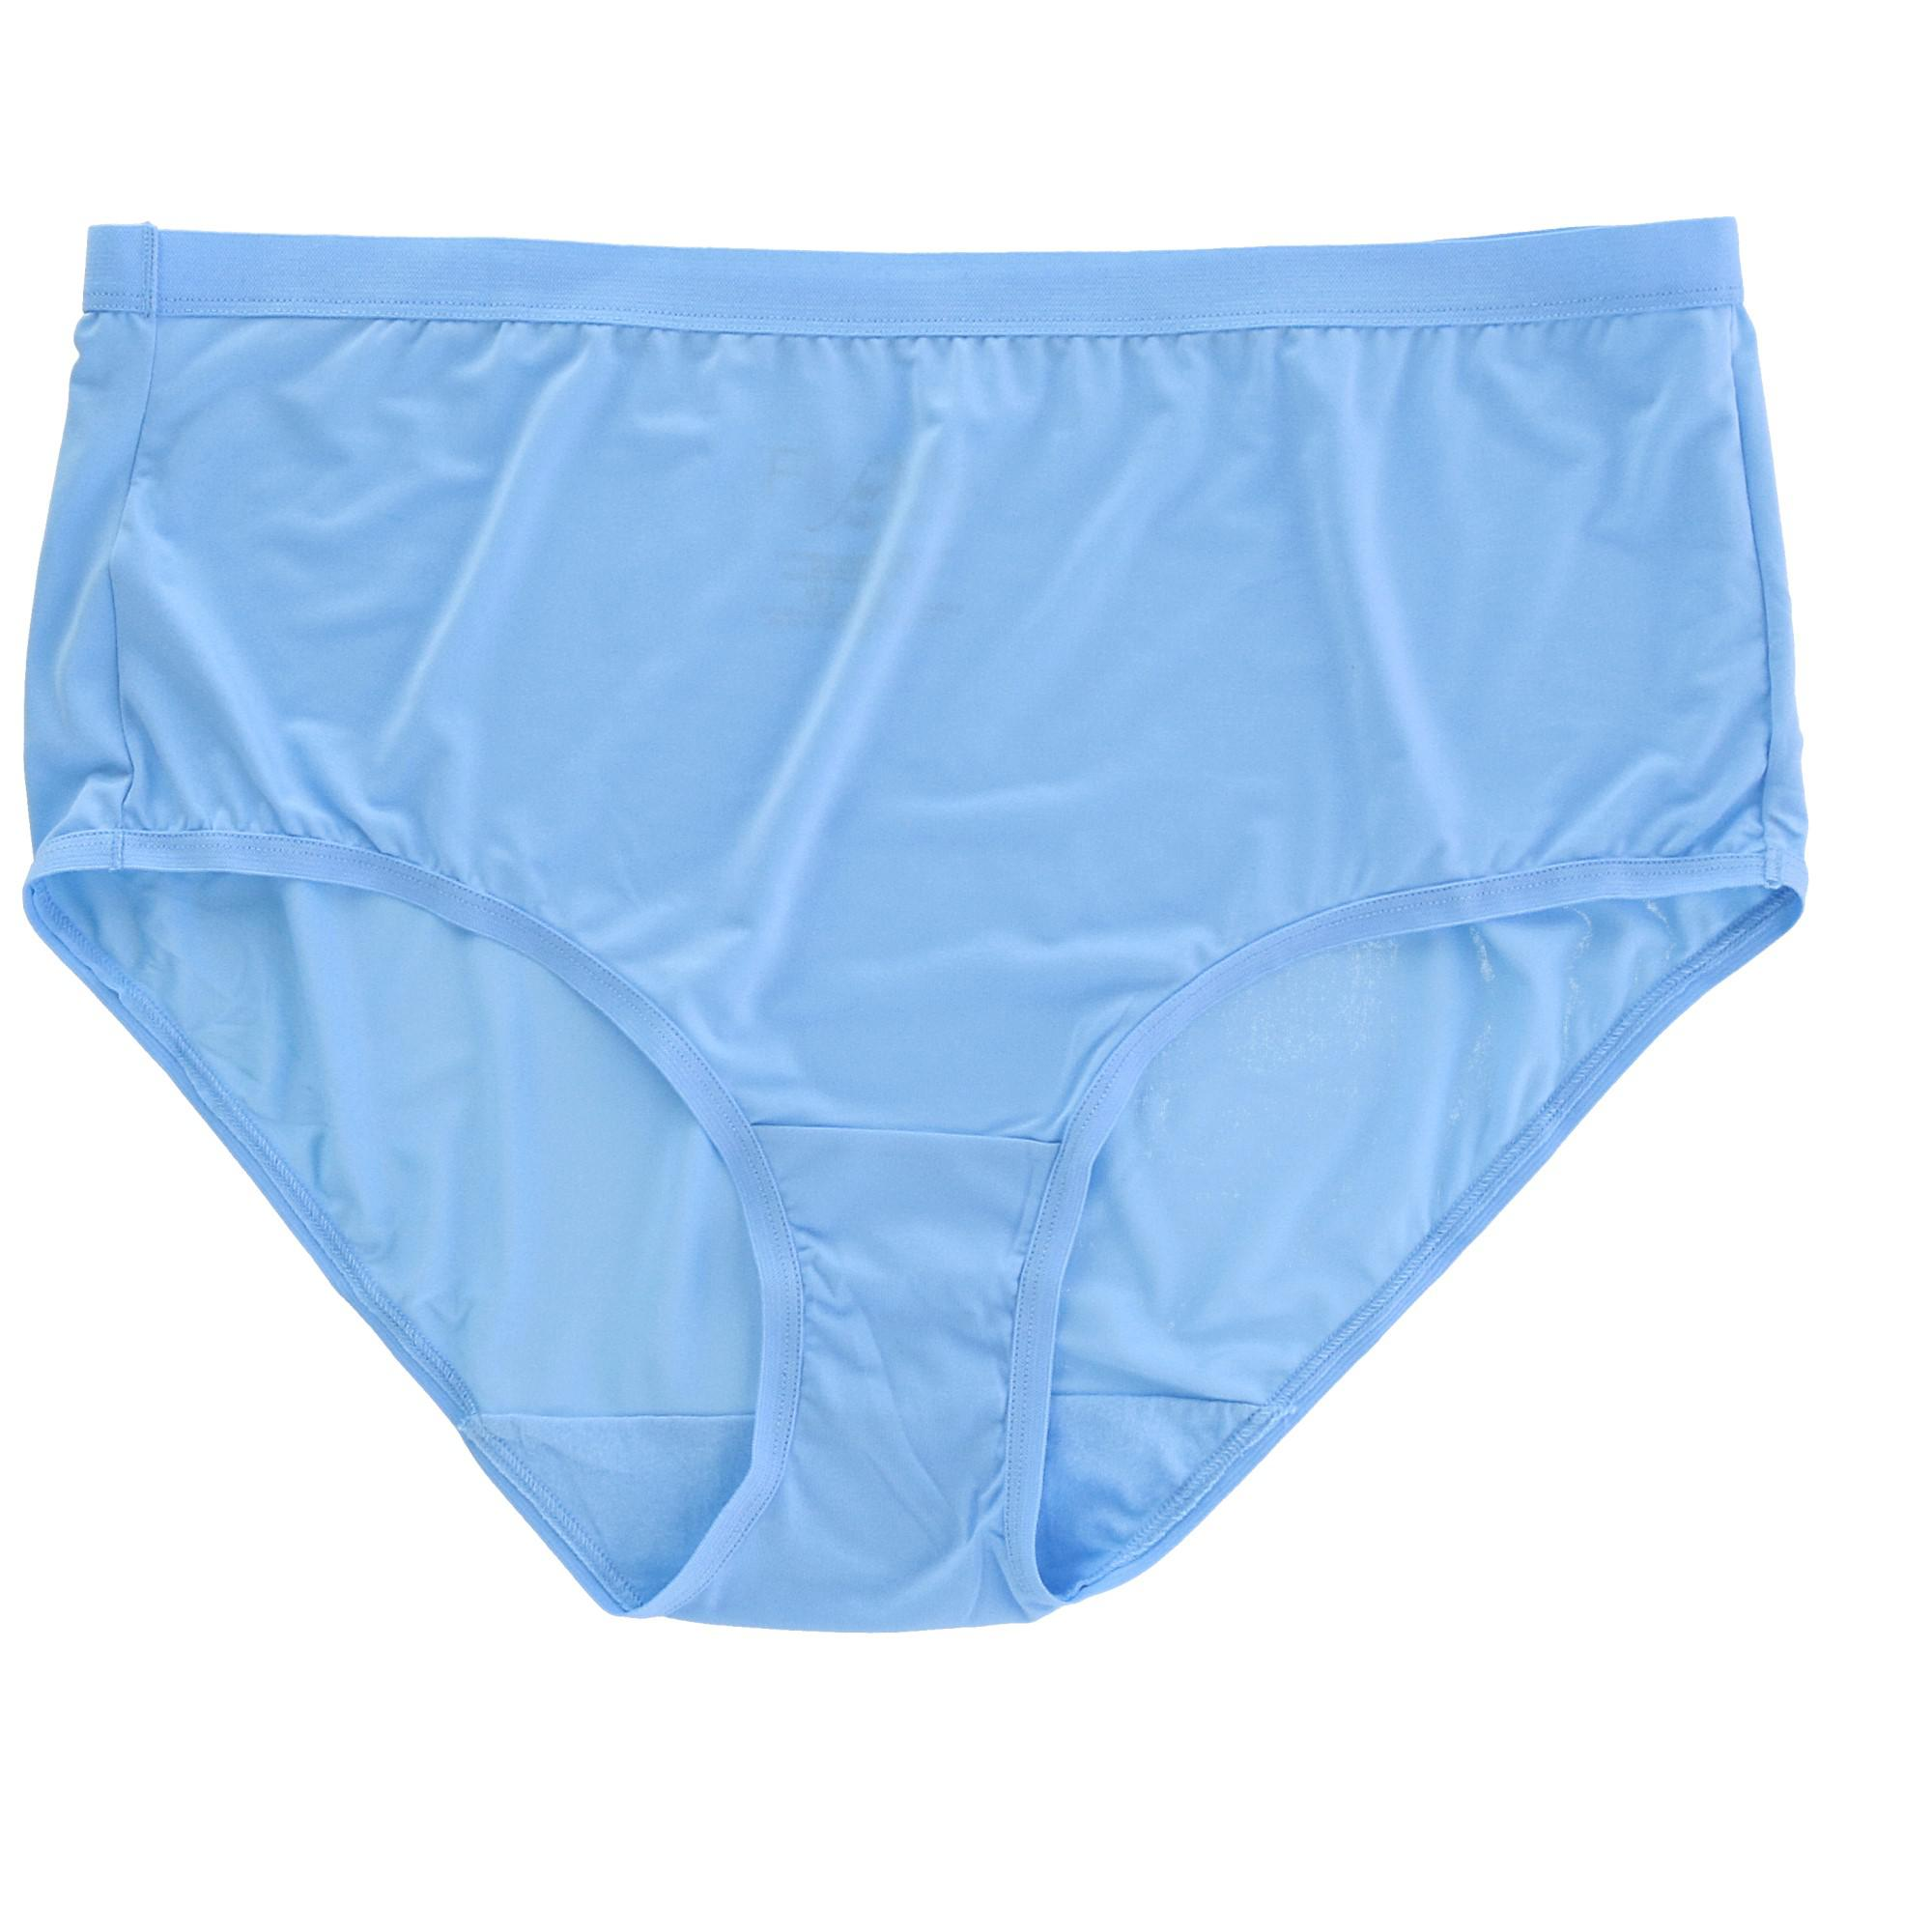 Fruit of the Loom Fit for Me Women`s 5PK Assorted Microfiber Brief, 12 - image 5 de 7